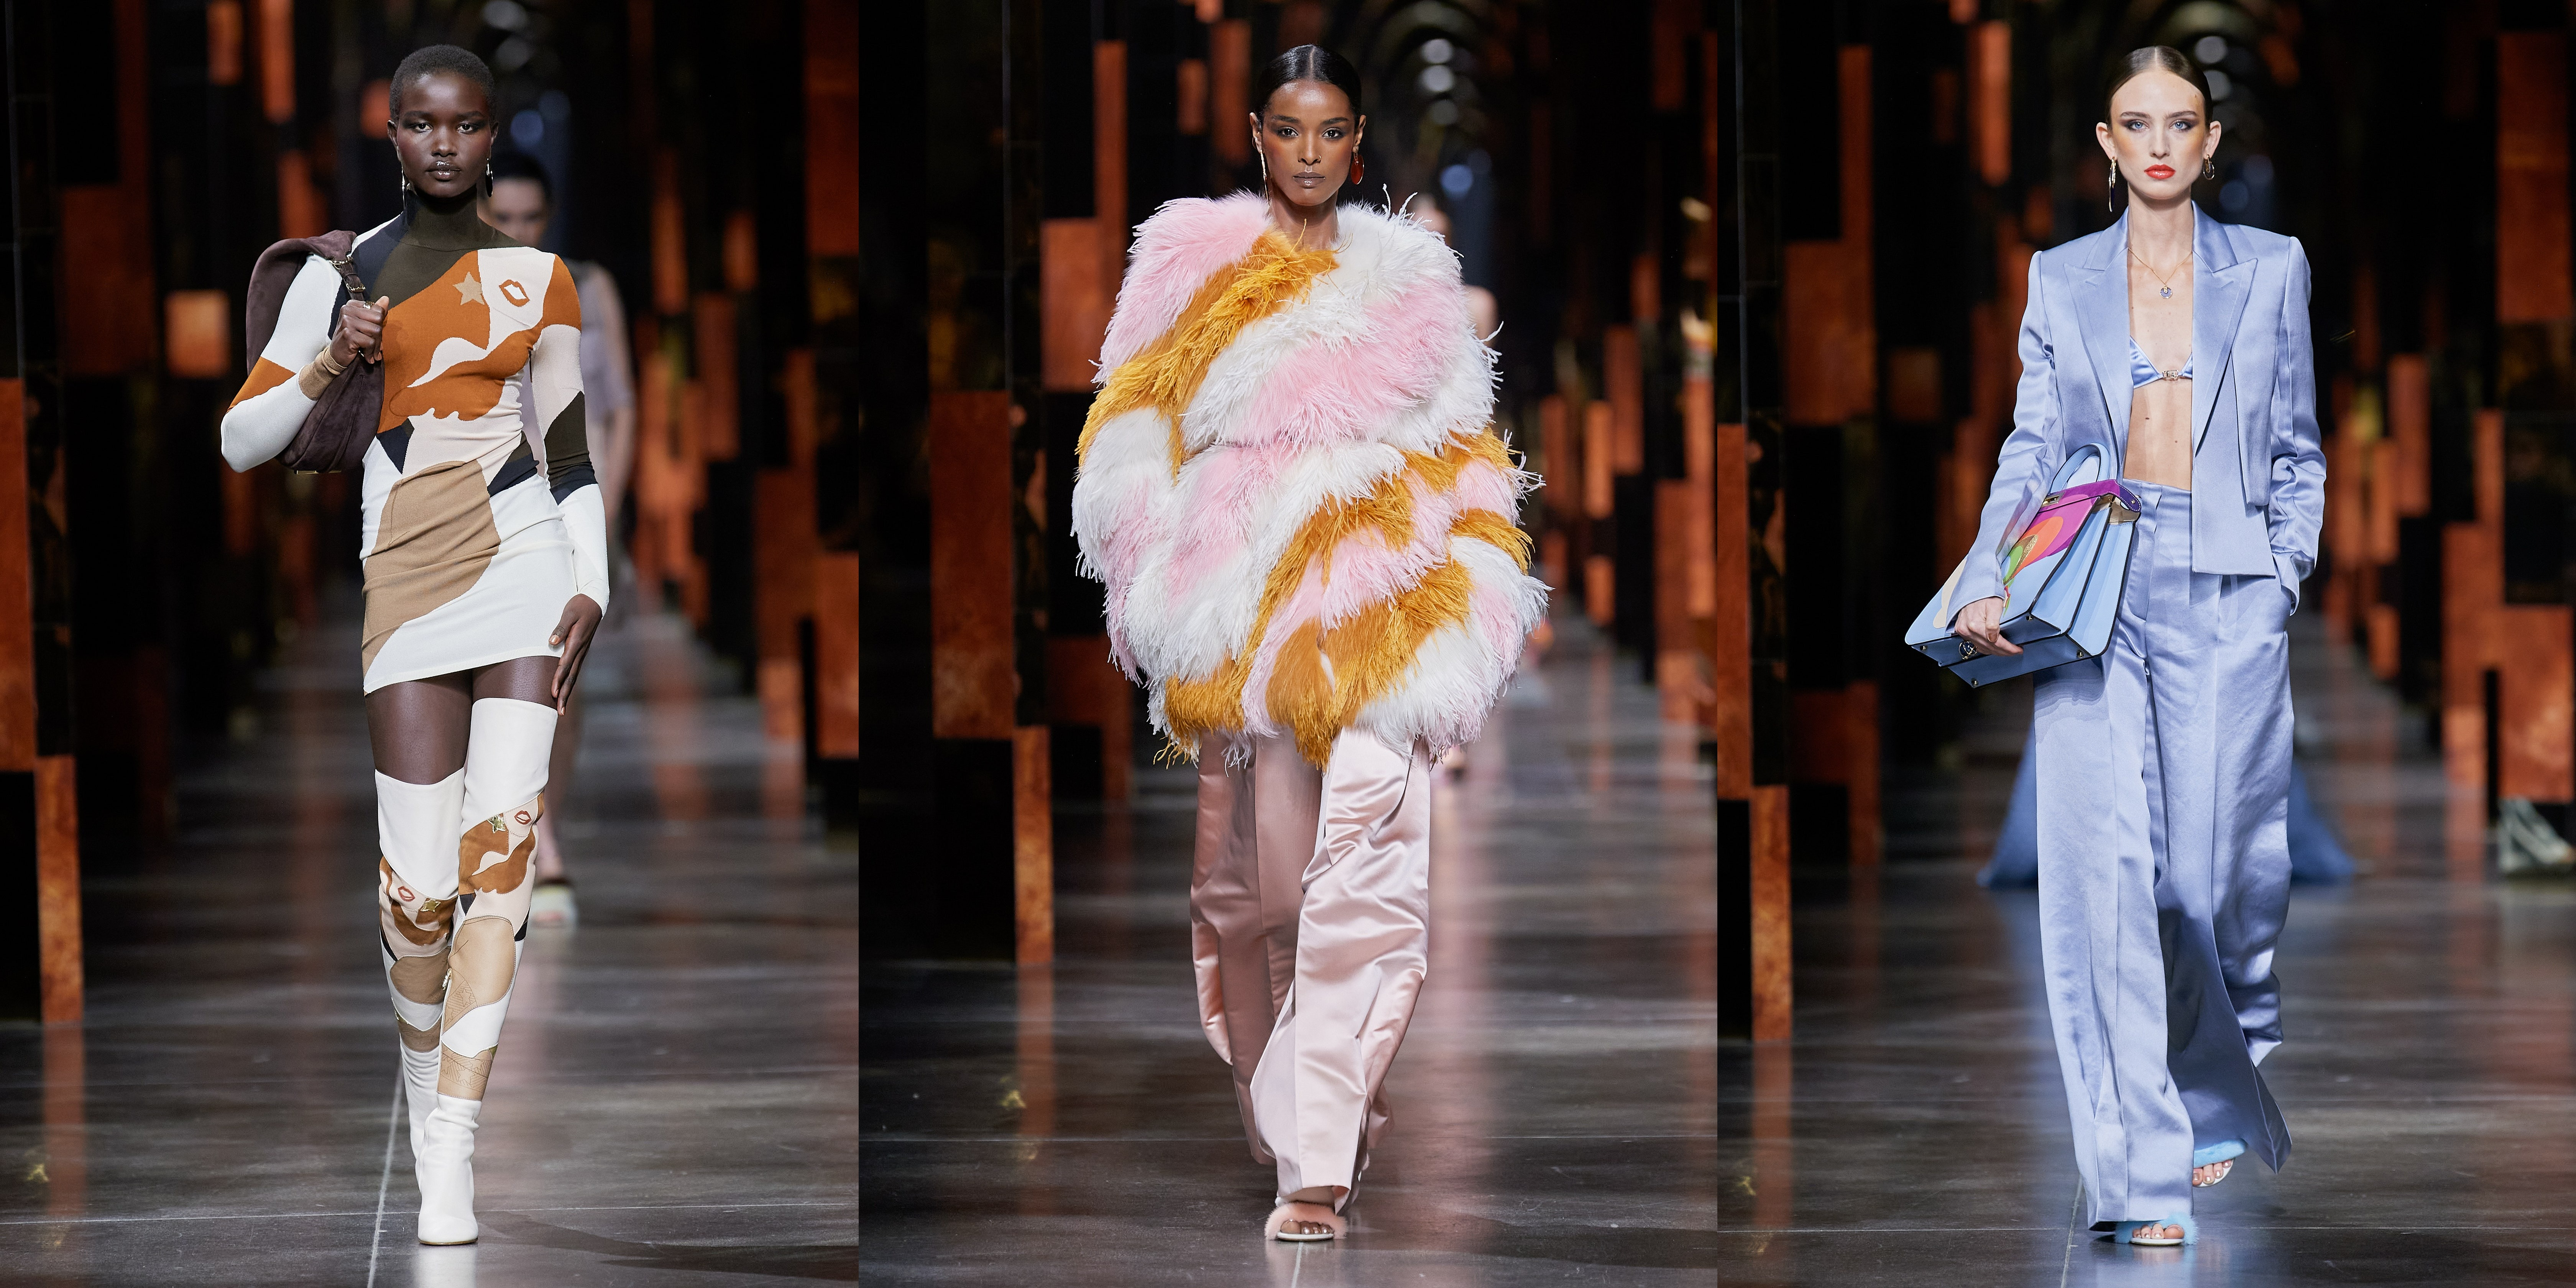 Fendi's SS22 ready-to-wear collection